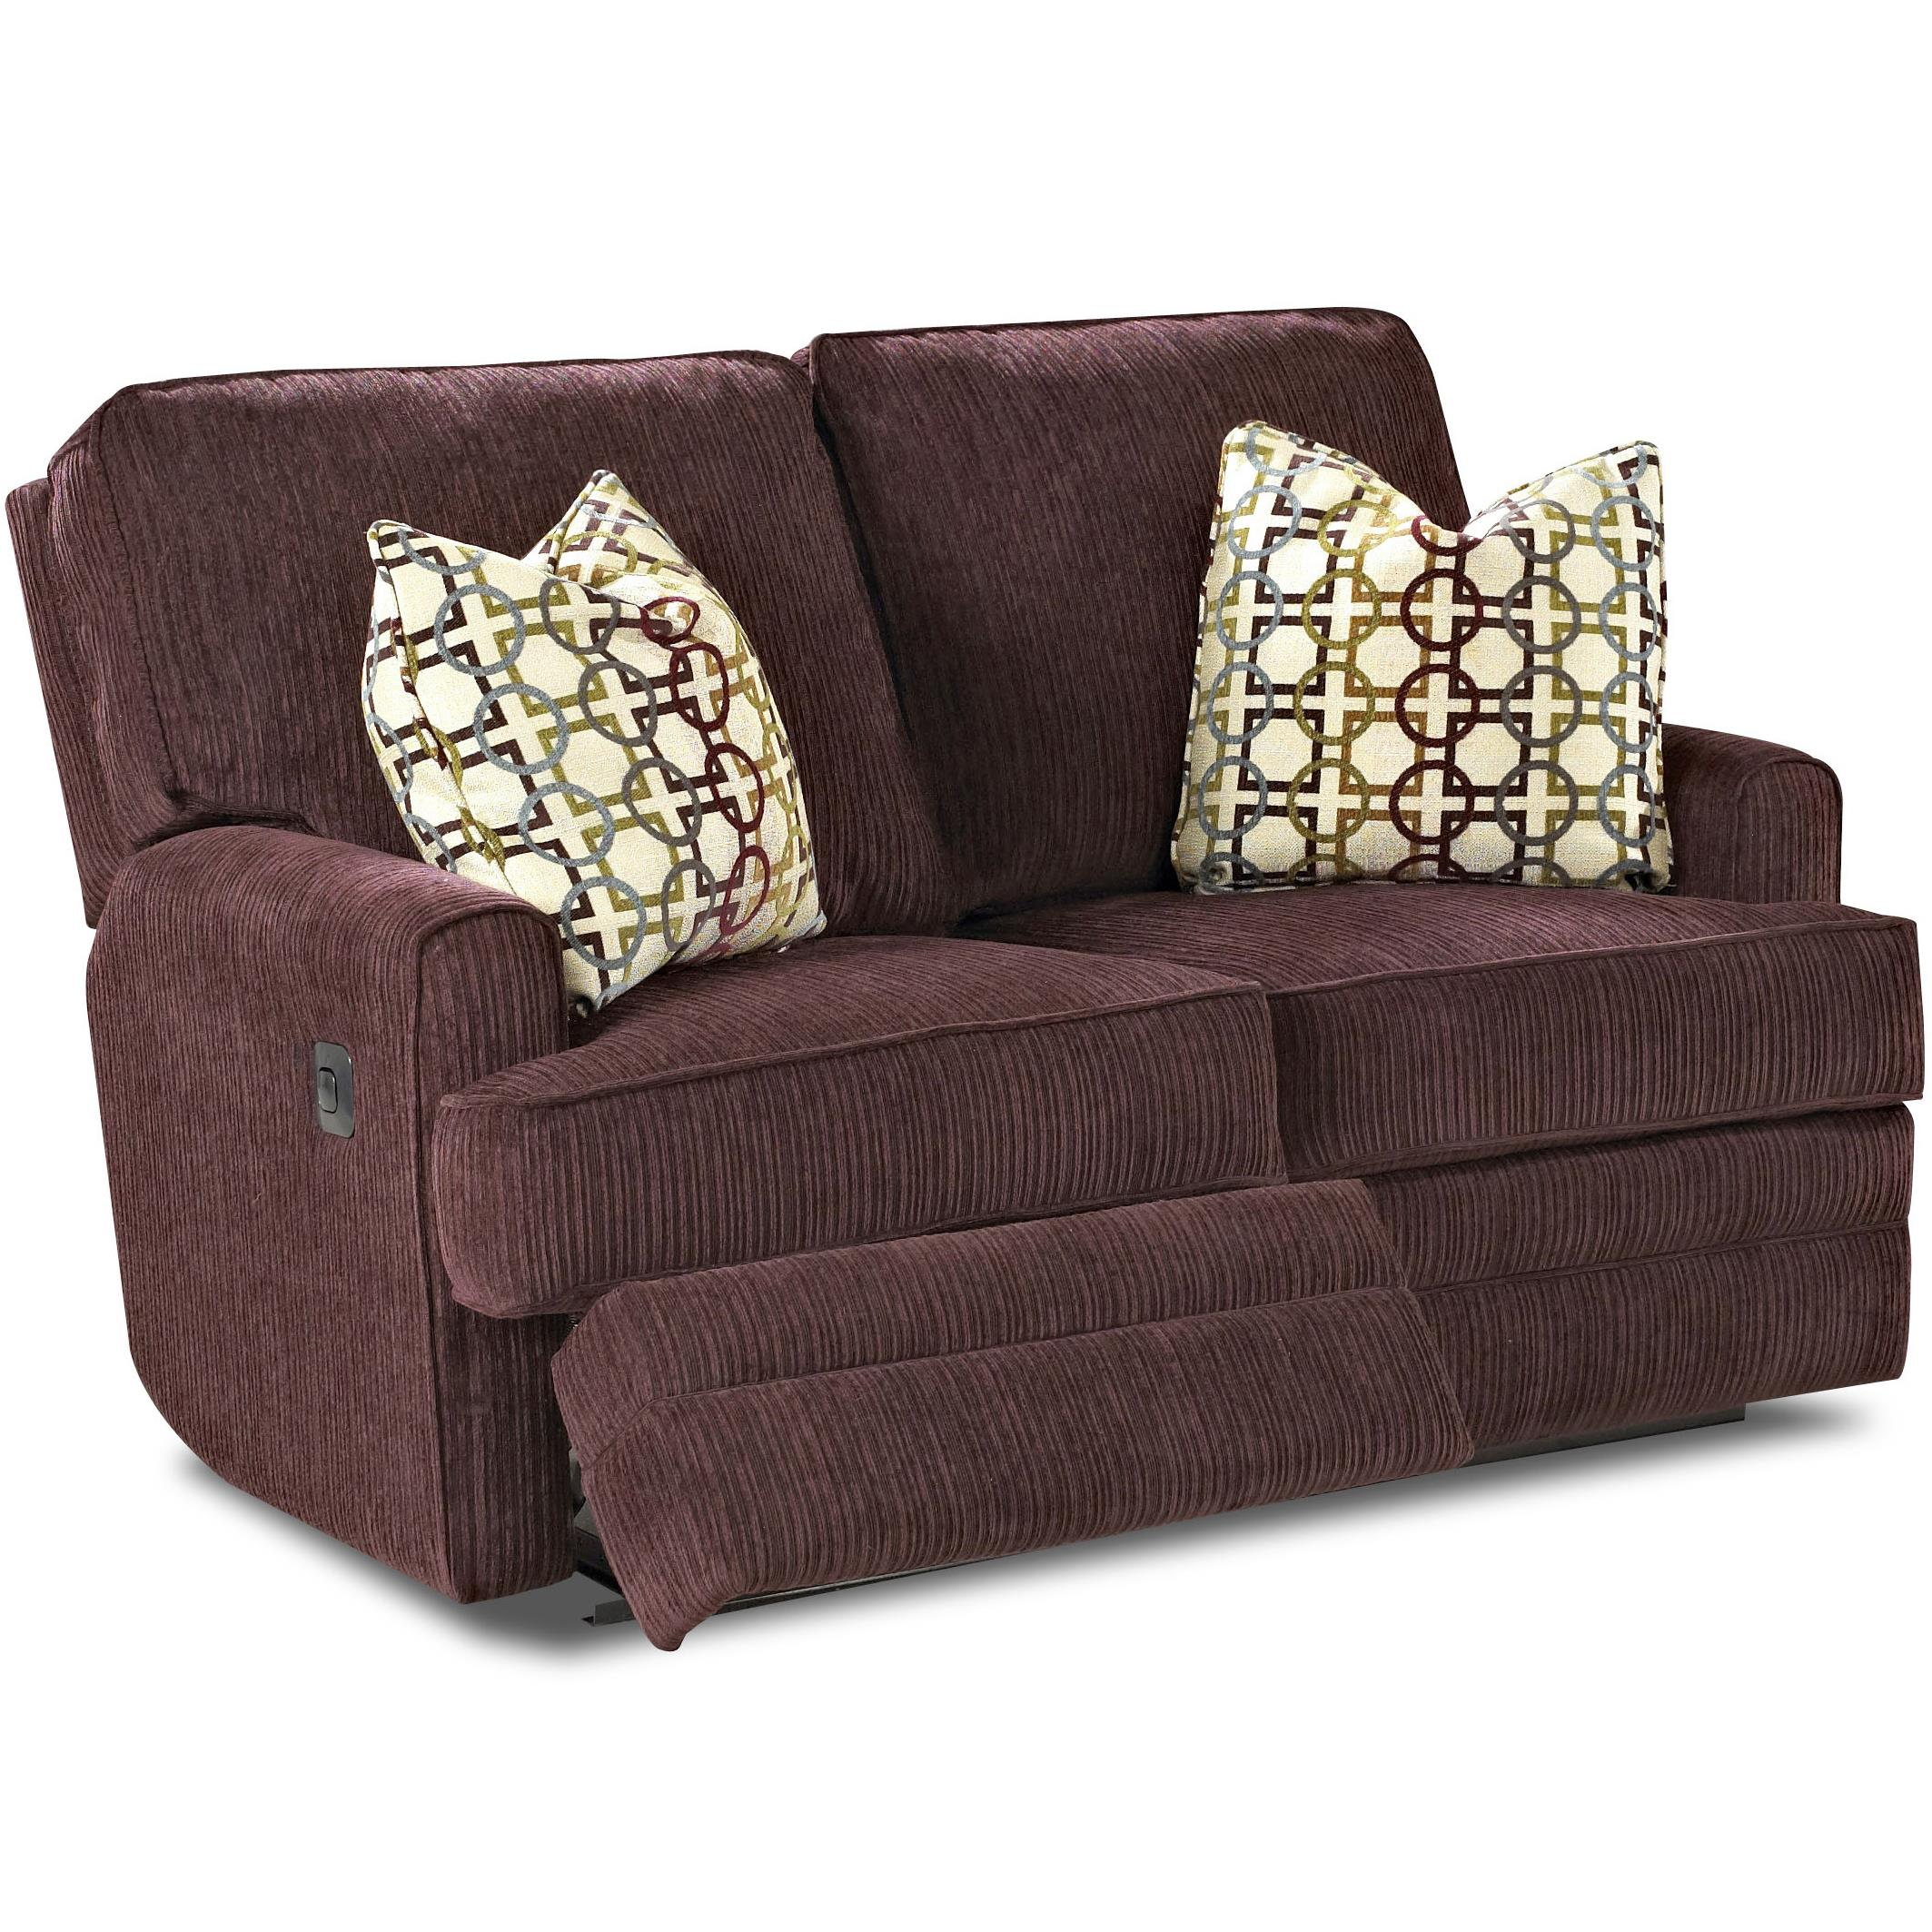 cloud track arm leather two seat cushion sofa macys chloe klaussner callahan casual power reclining love with